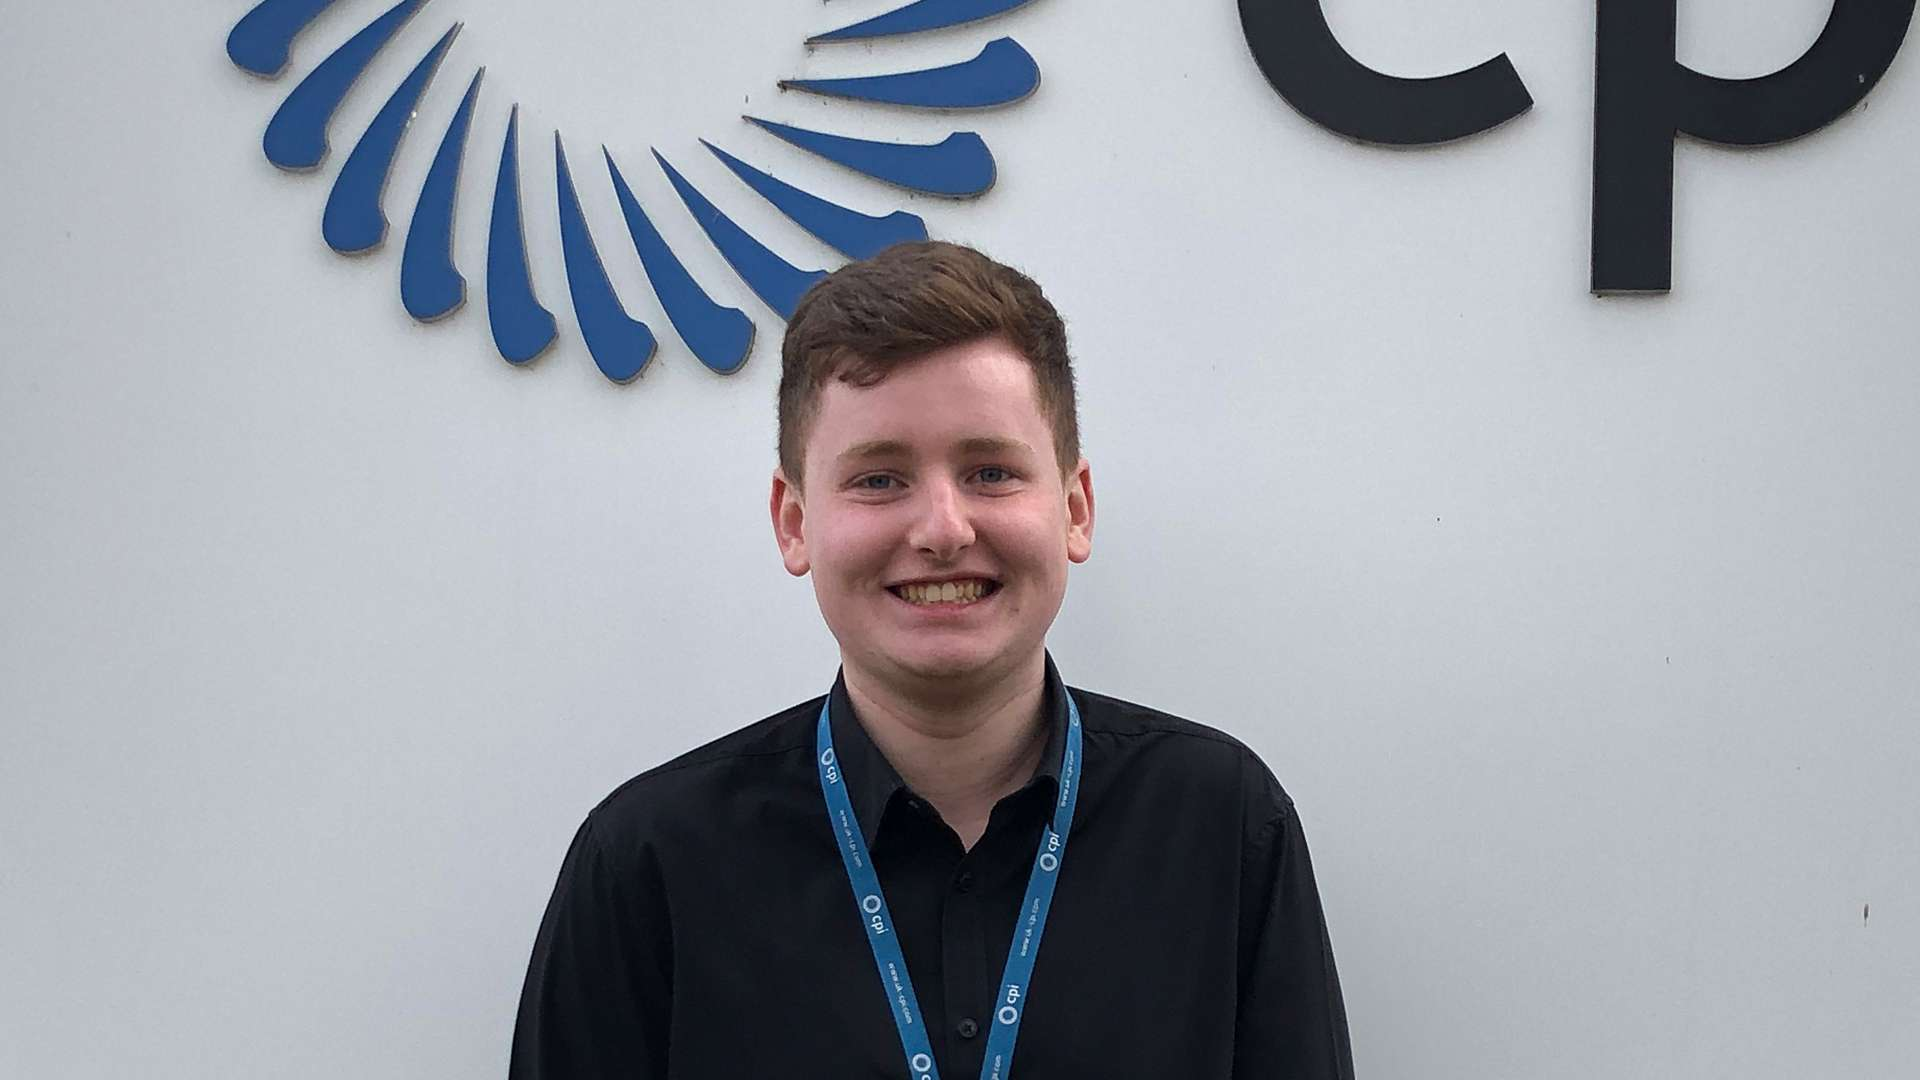 A photo of Aaron Parkinson, an apprentice at CPI.